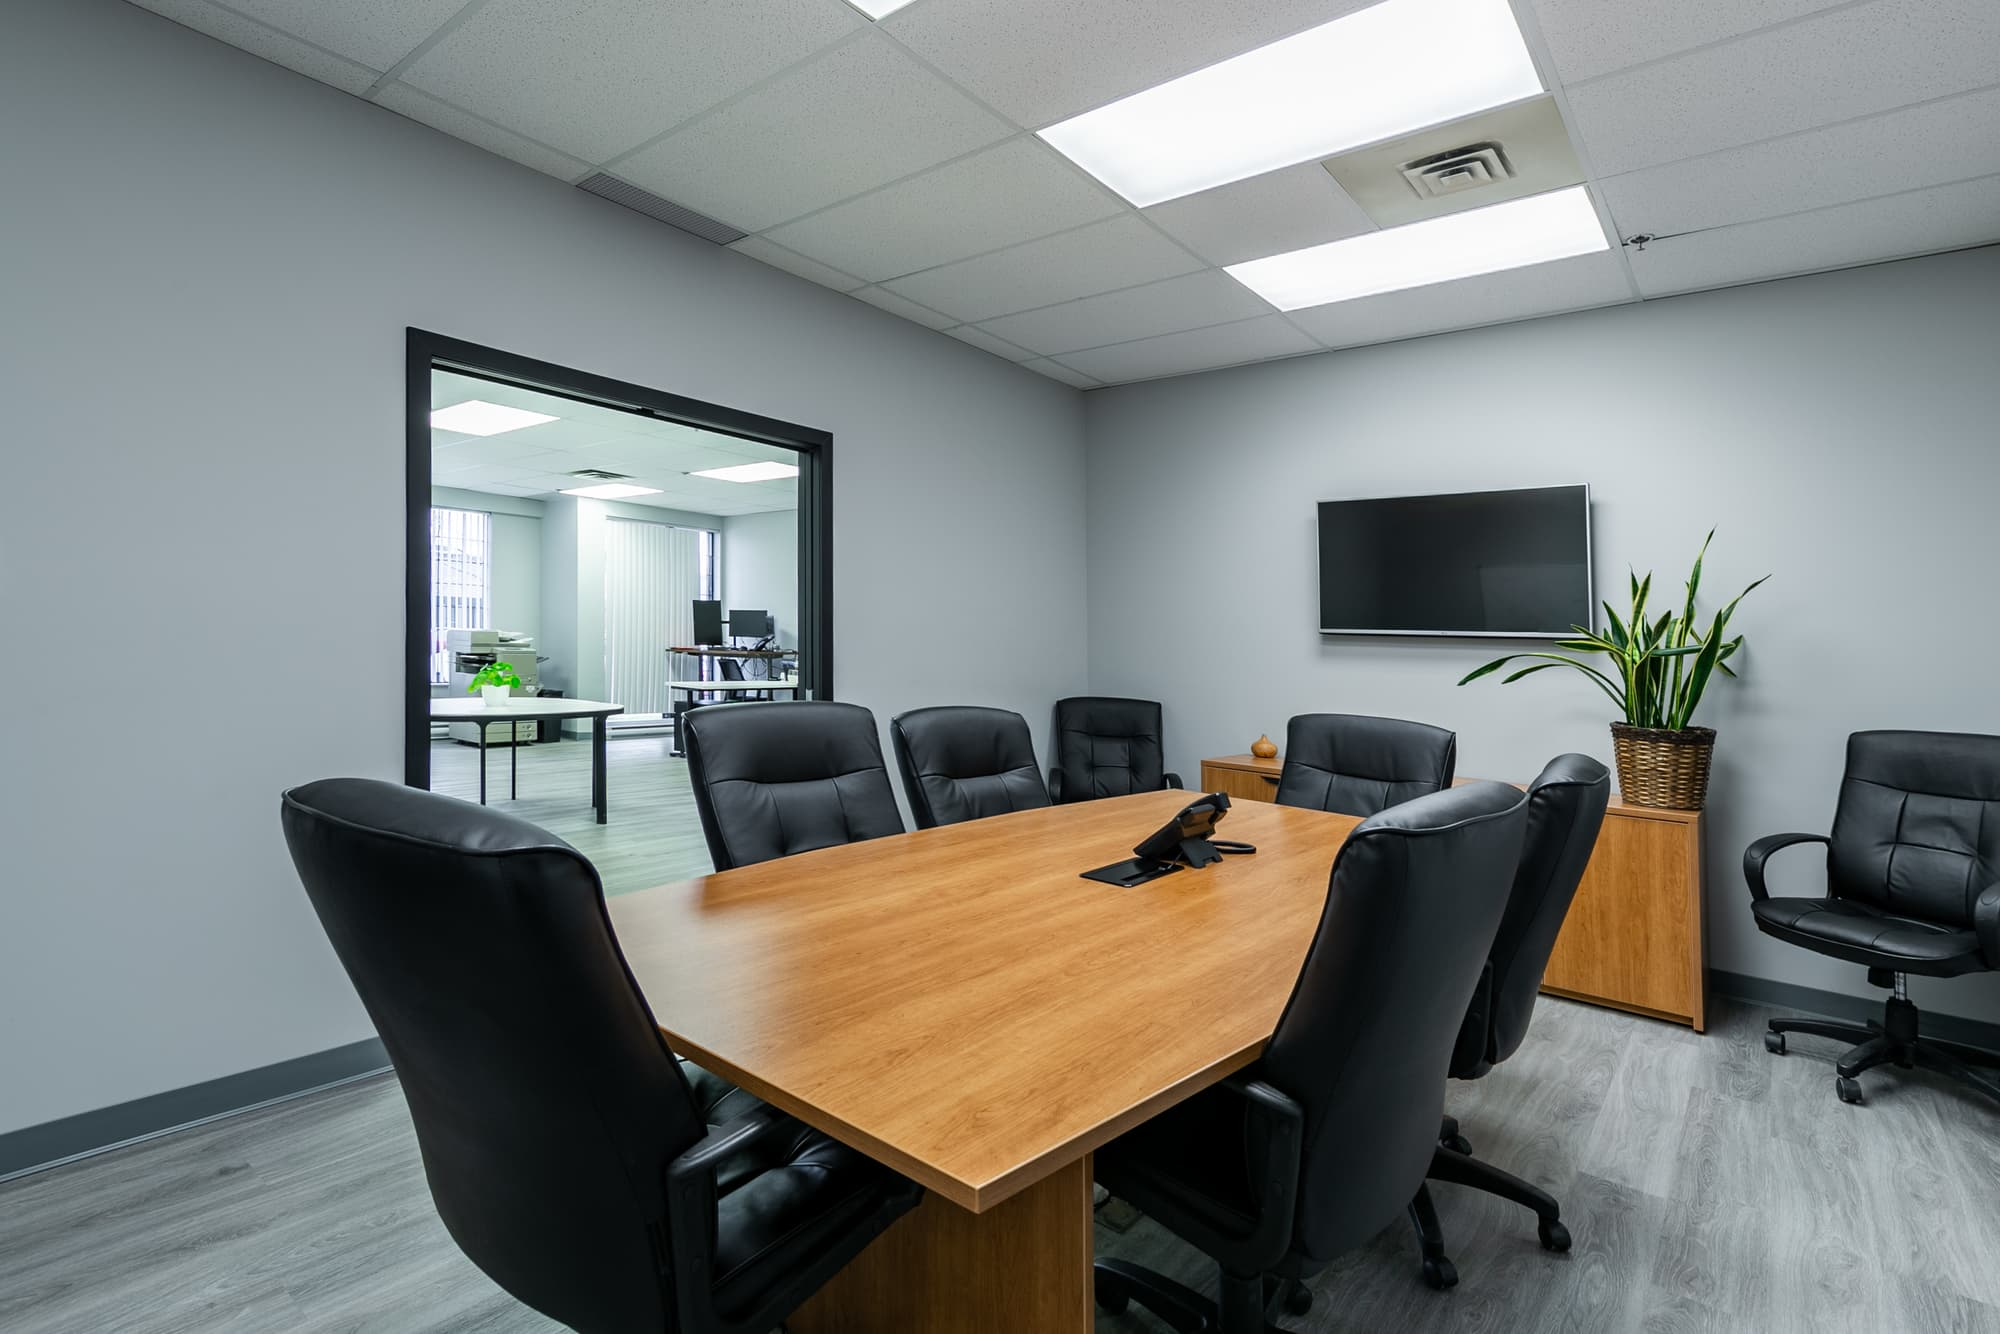 conference room with a wooden table and leather chairs